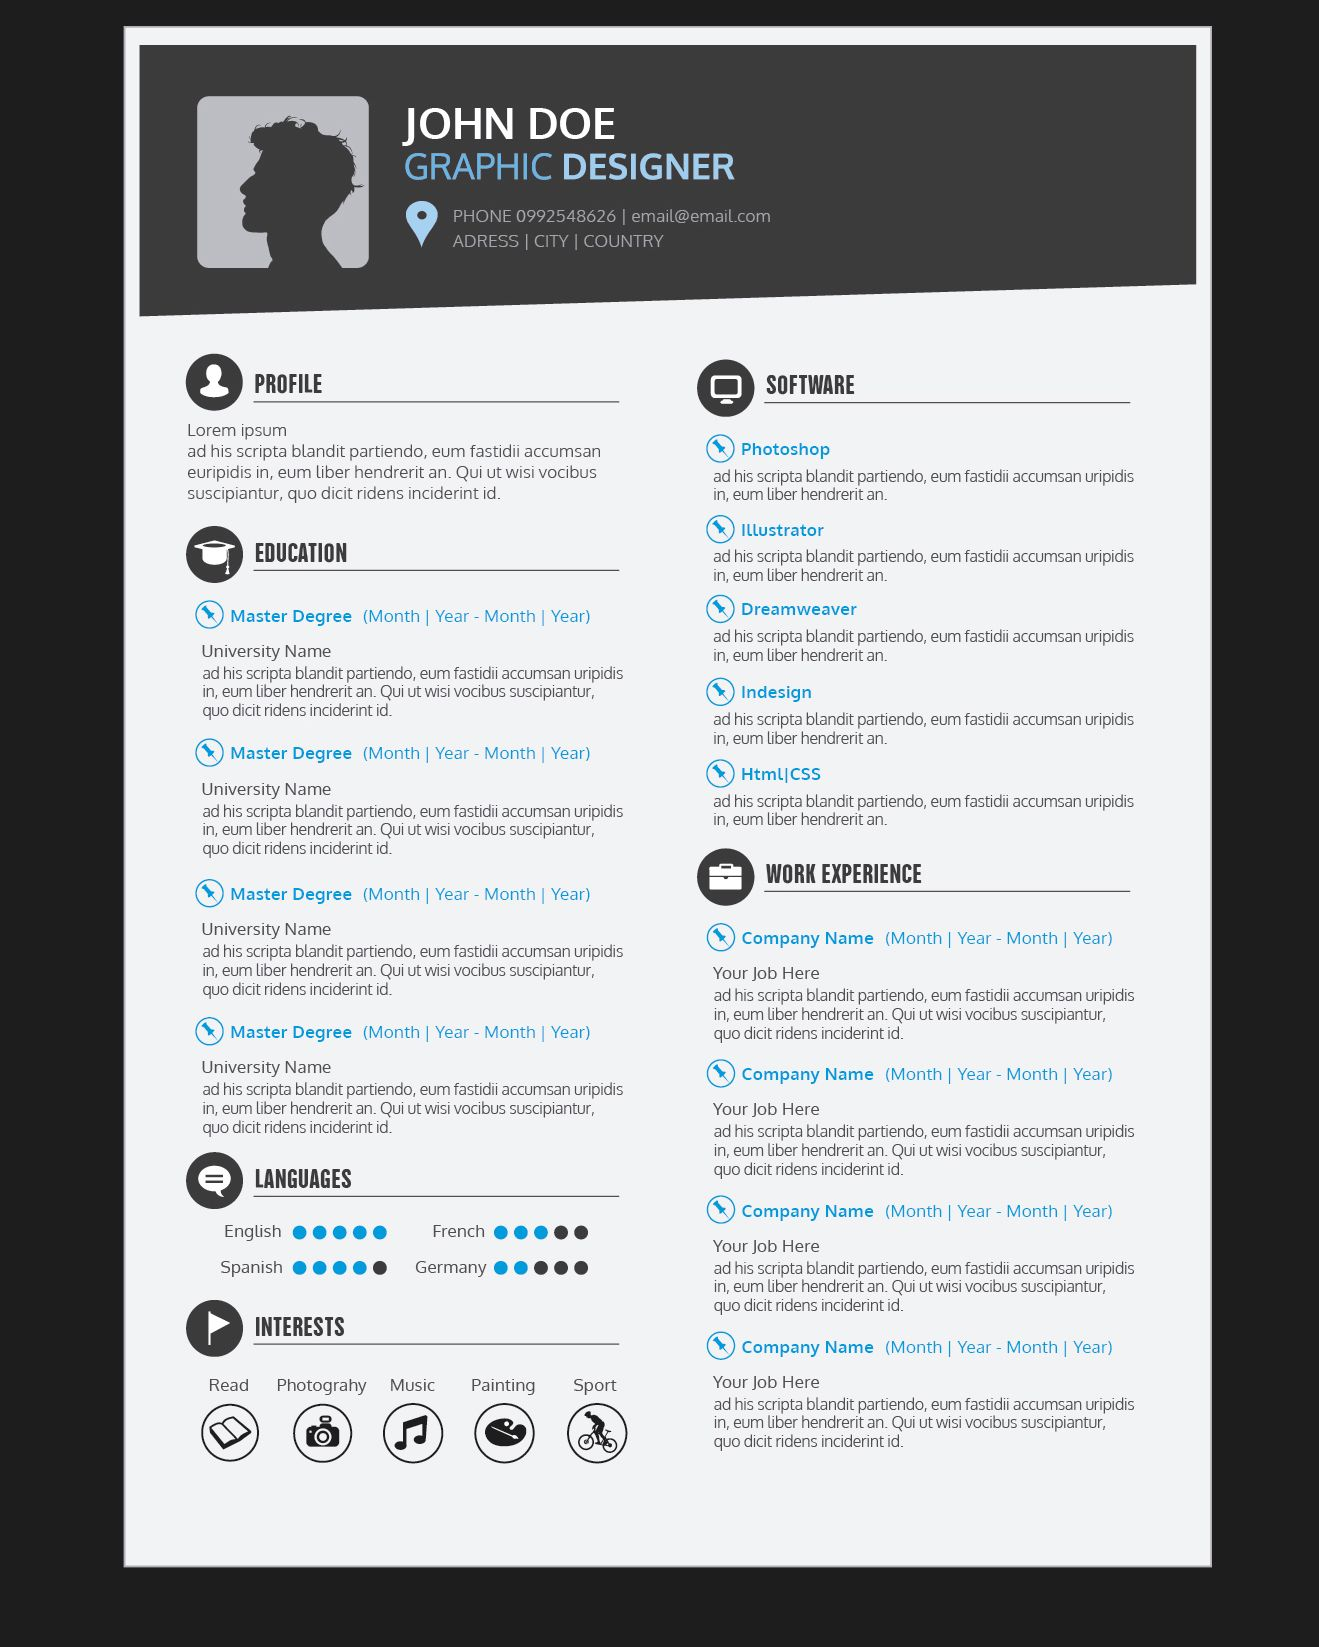 Graphic designer resume cv vector download graphic designer resume cv download large image 1319x1647px license image user altavistaventures Image collections